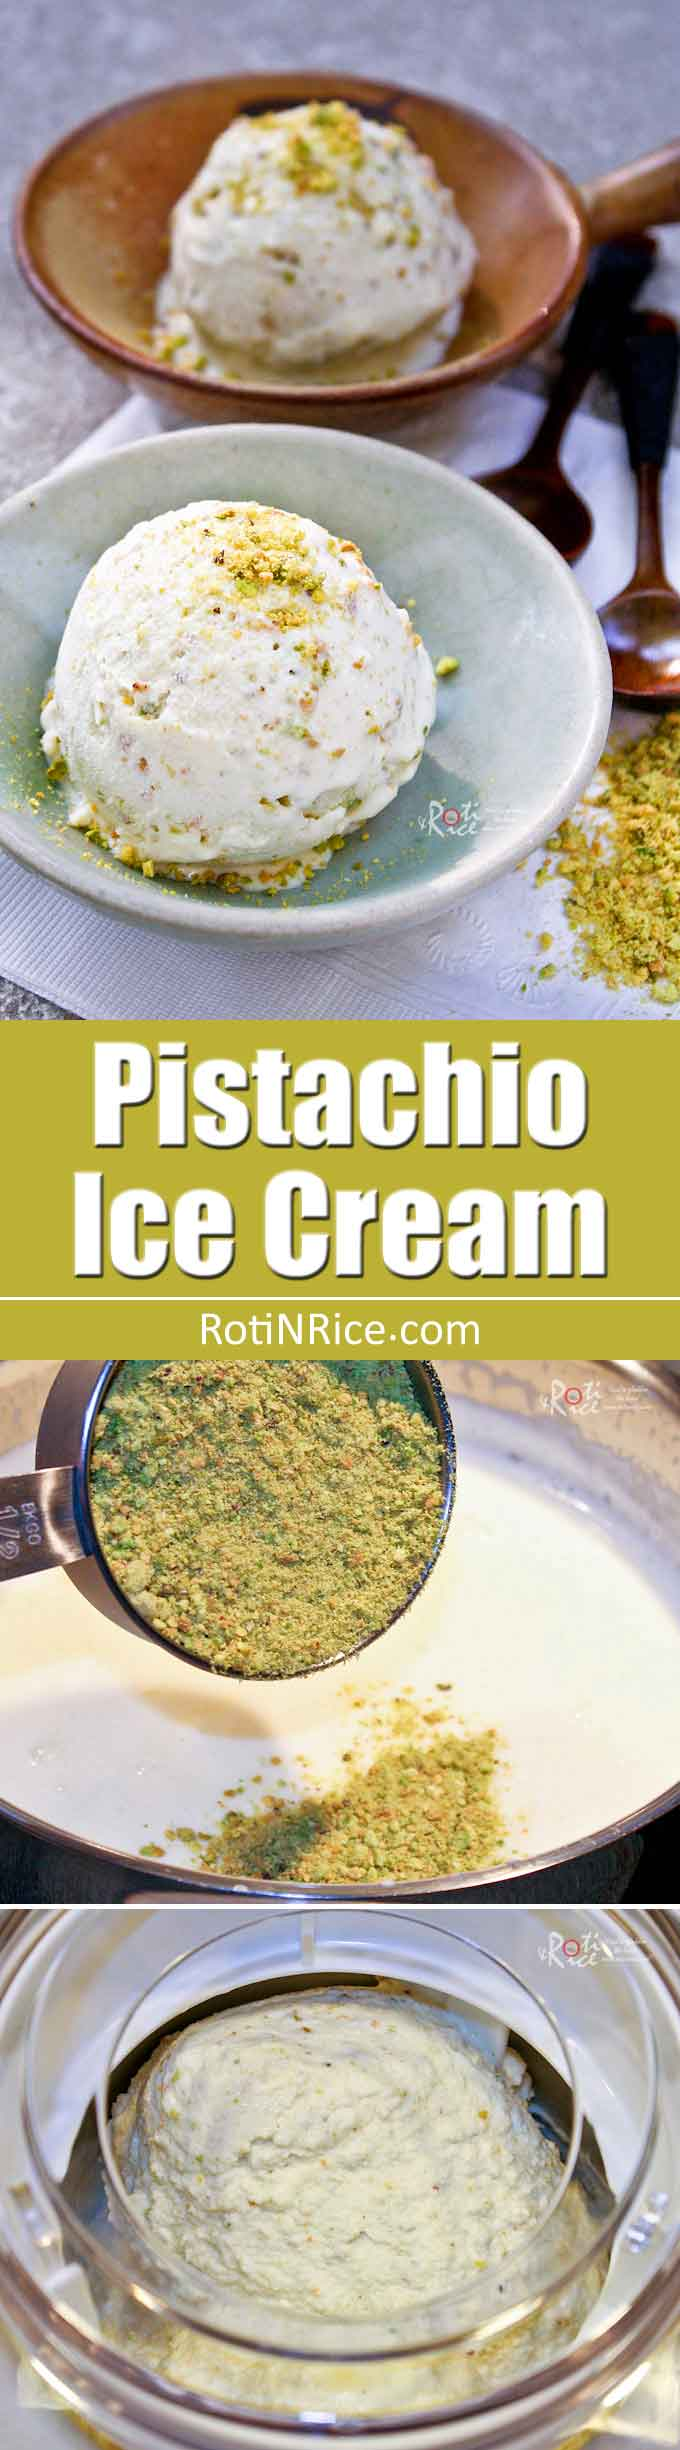 Super creamy egg free Pistachio Ice Cream. You'll be amazed by the silky smooth texture of this delightful frozen treat. A must try! | RotiNRice.com